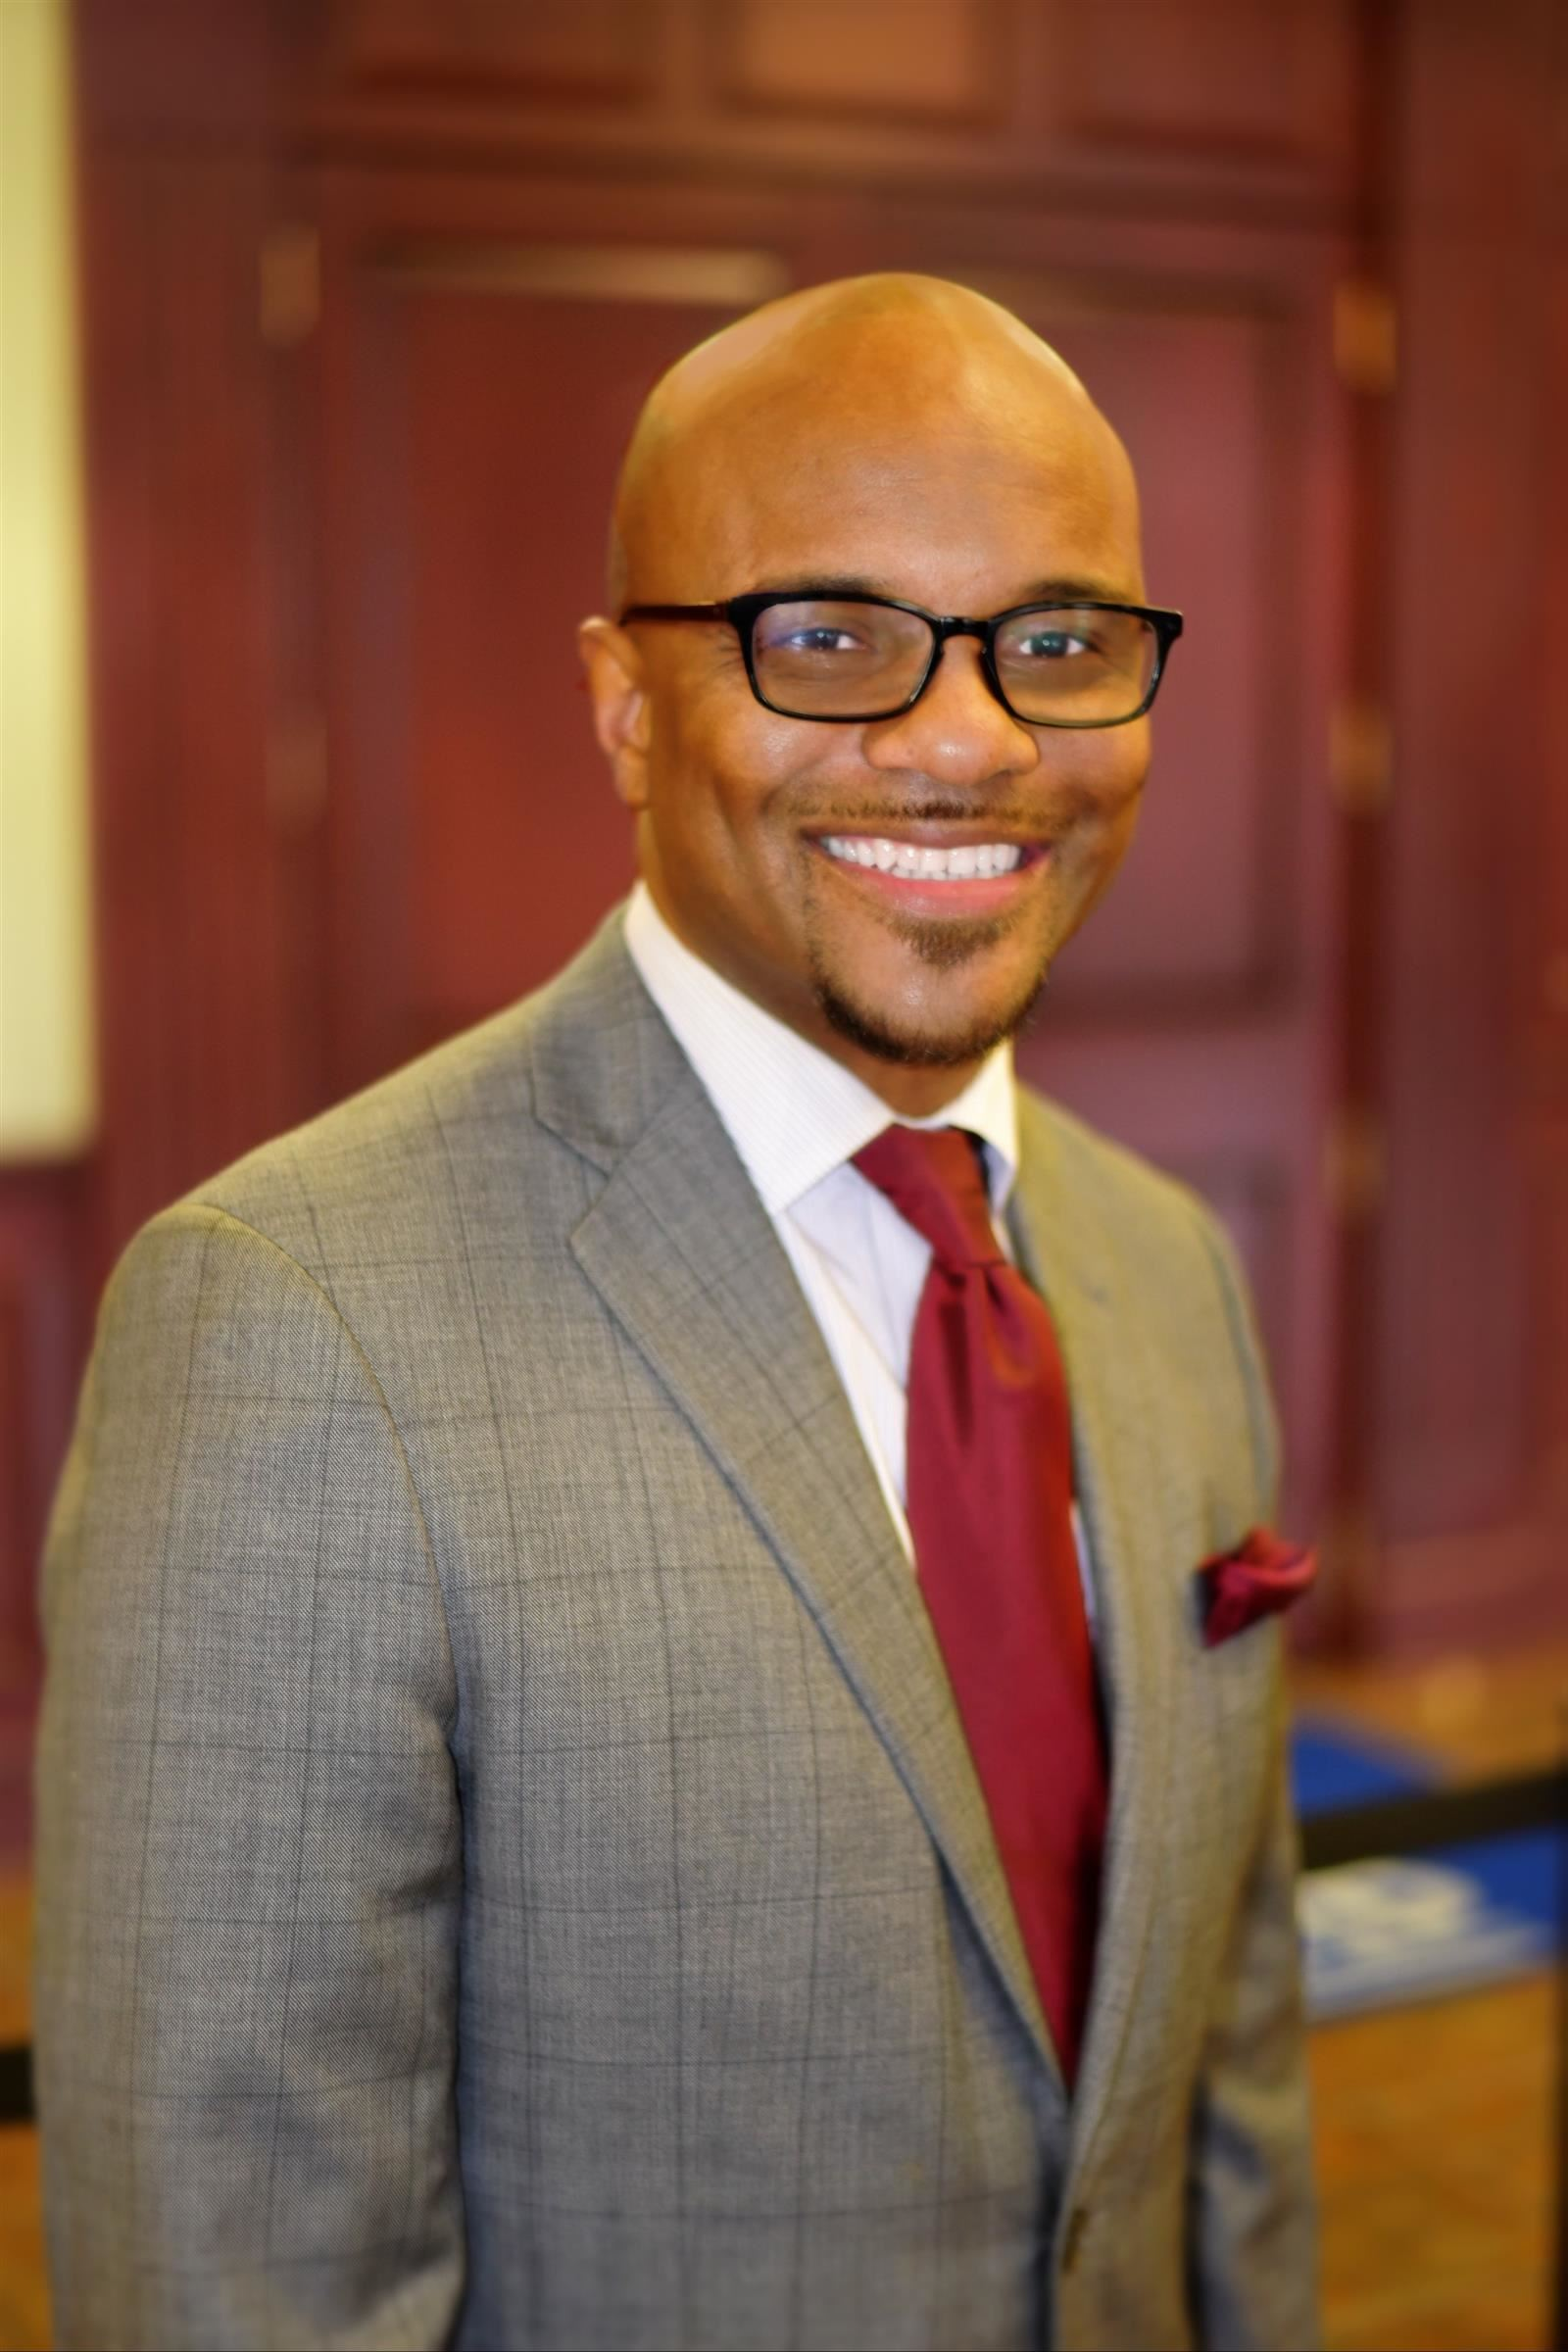 Dr. Marcus Jackson Explains the Importance of Developing Positive Student-Teacher Interactions